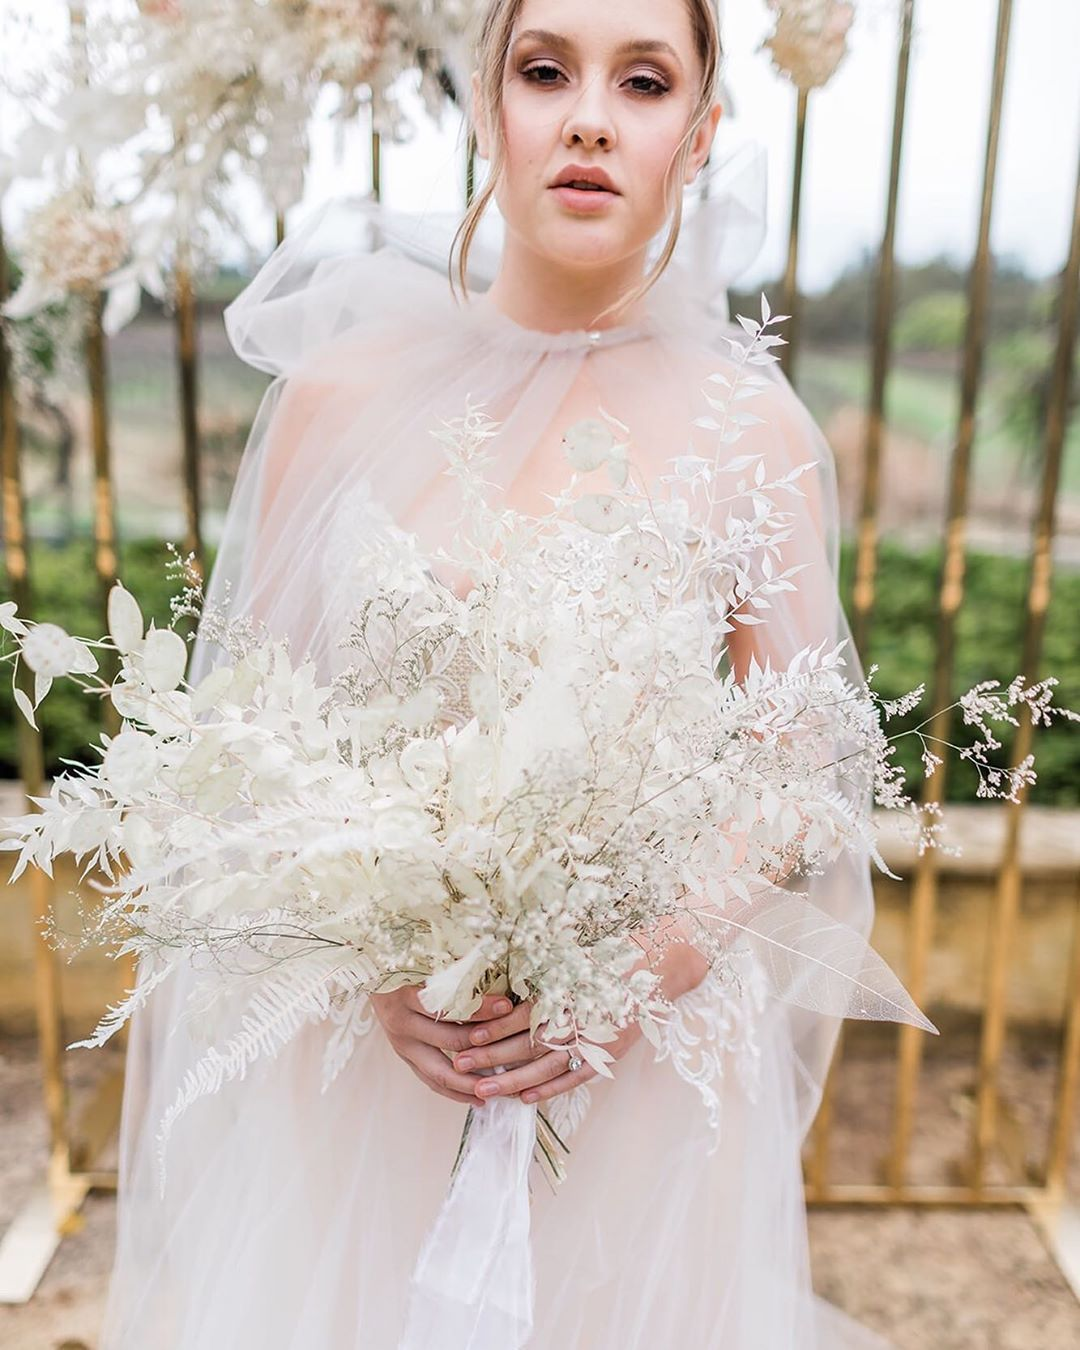 Wedding Event Florals On Instagram There S Something About All